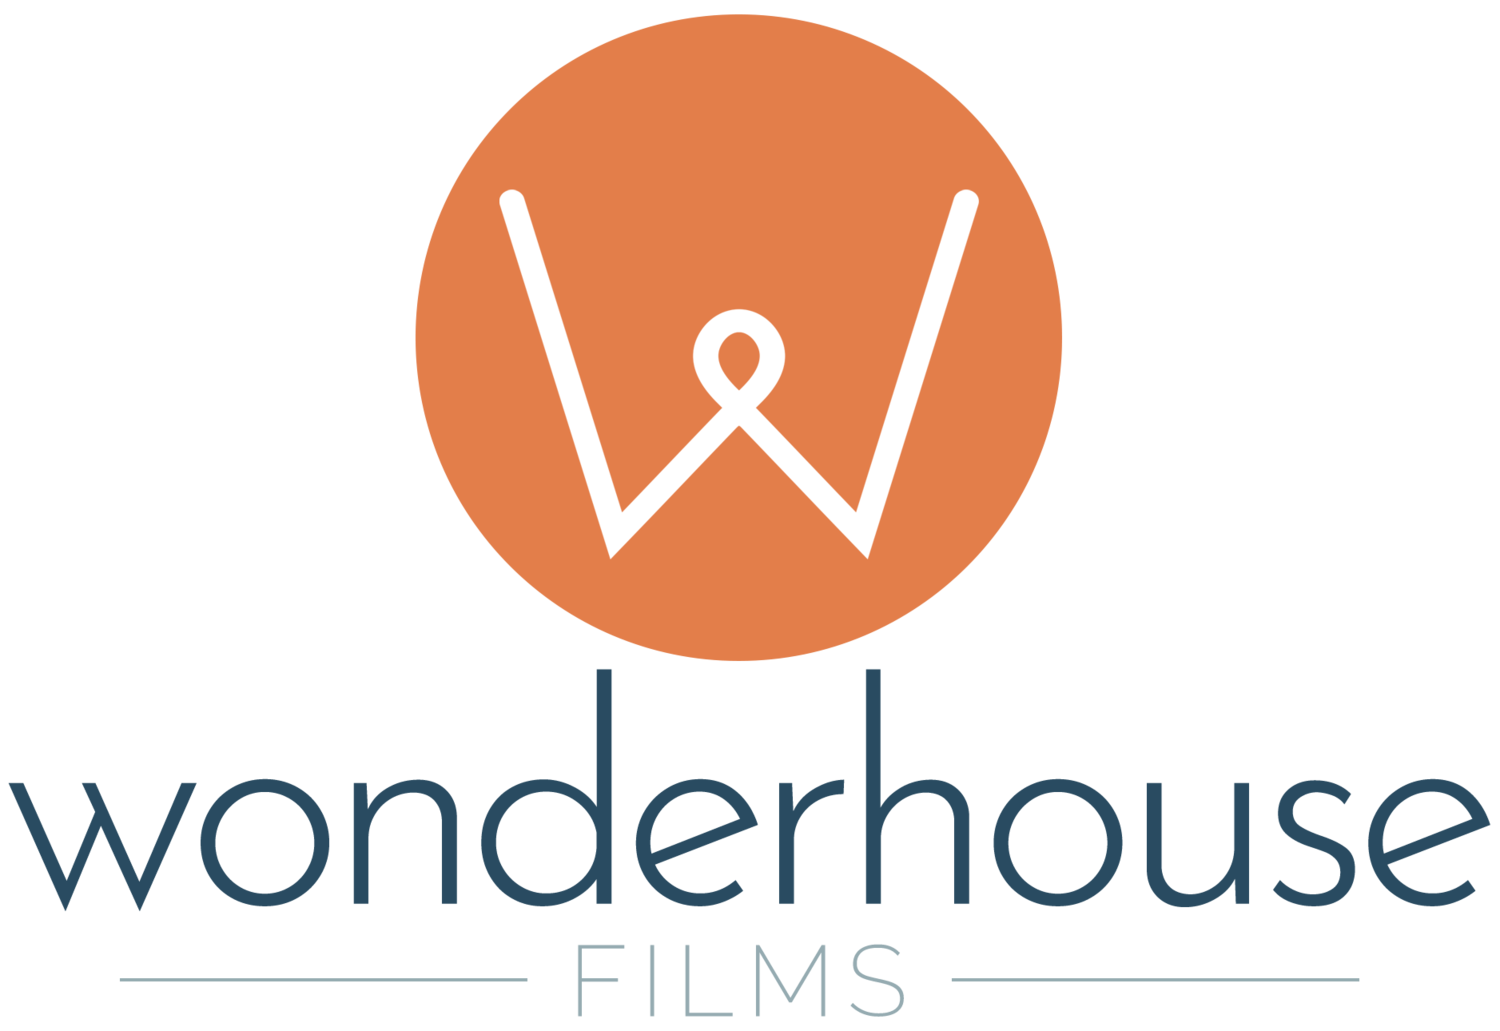 Wonderhouse Films